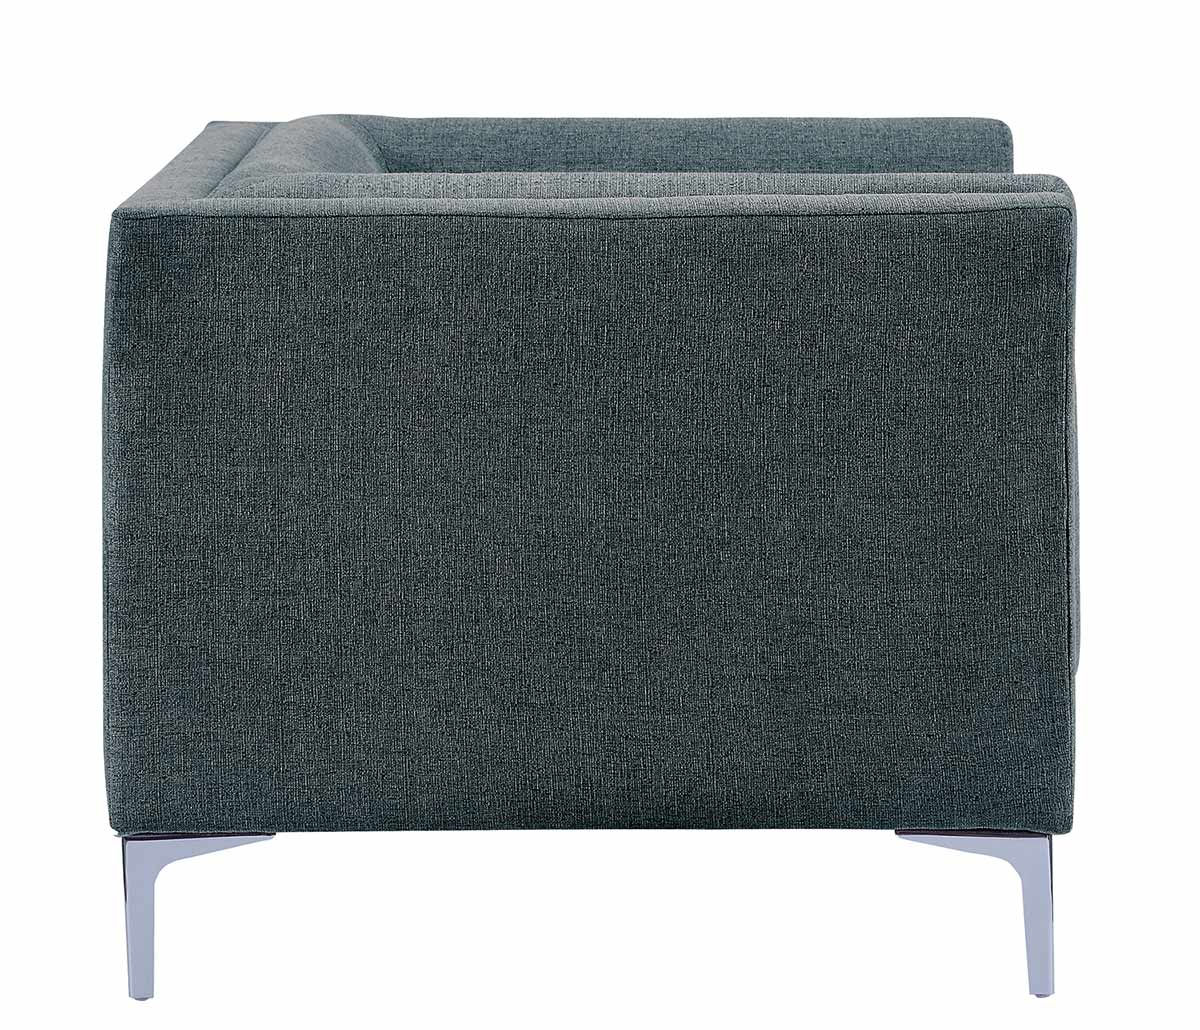 Homelegance Vernice Chair - Dark blue gray